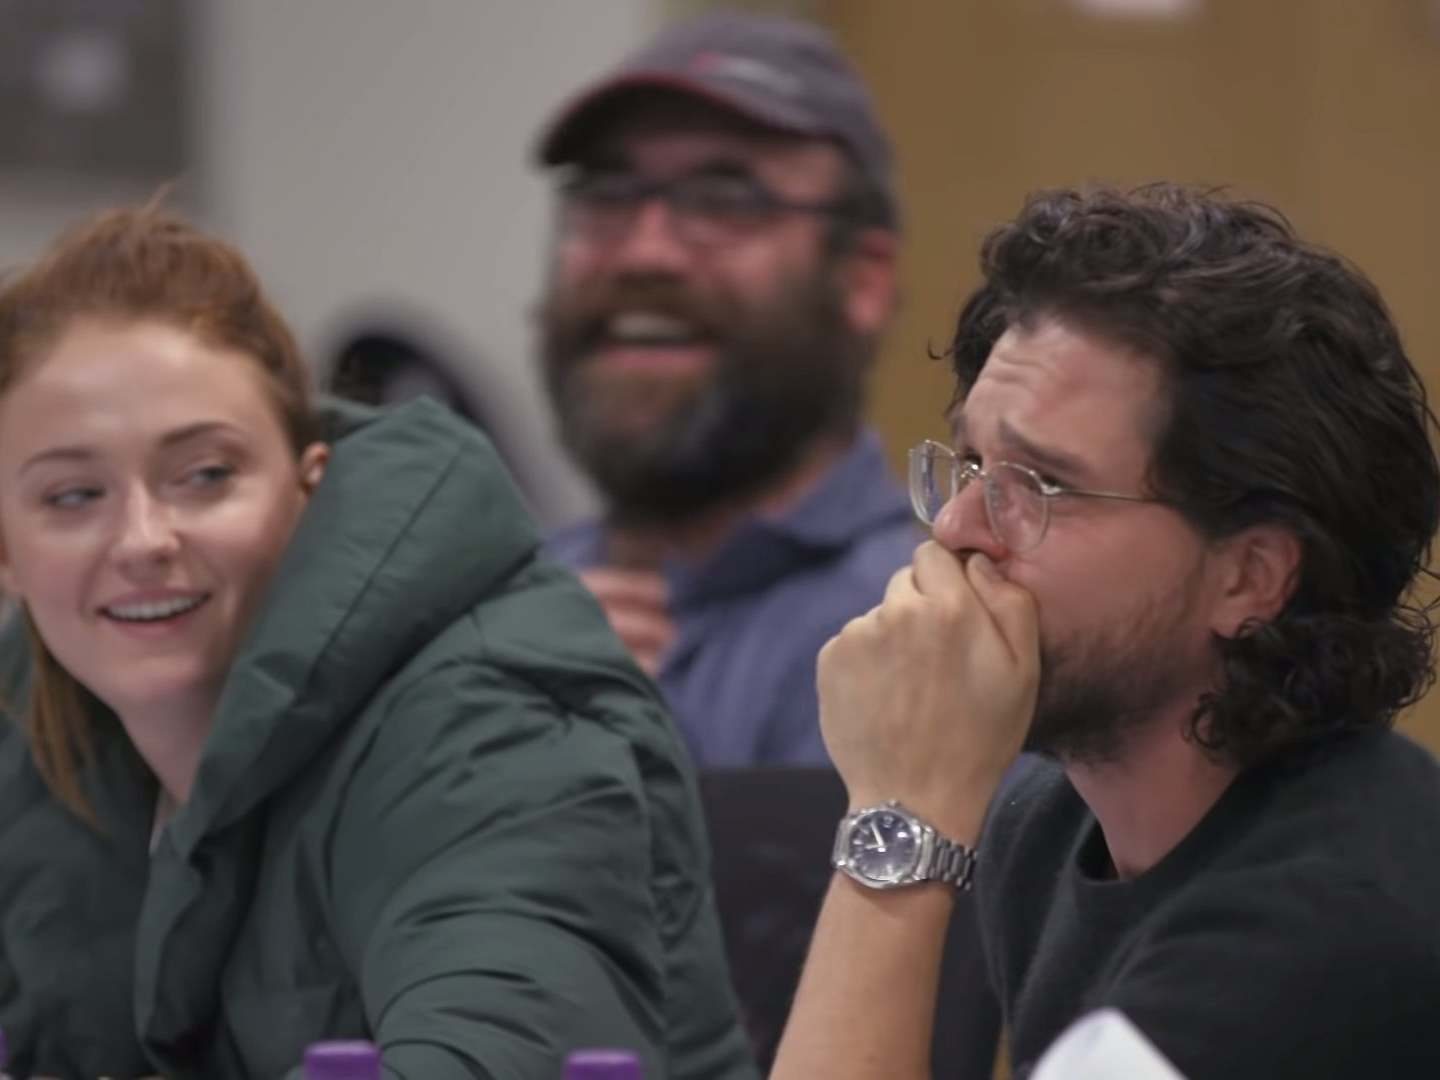 Game of Thrones: Kit Harington's emotional reaction to ending captured in Last Watch documentary